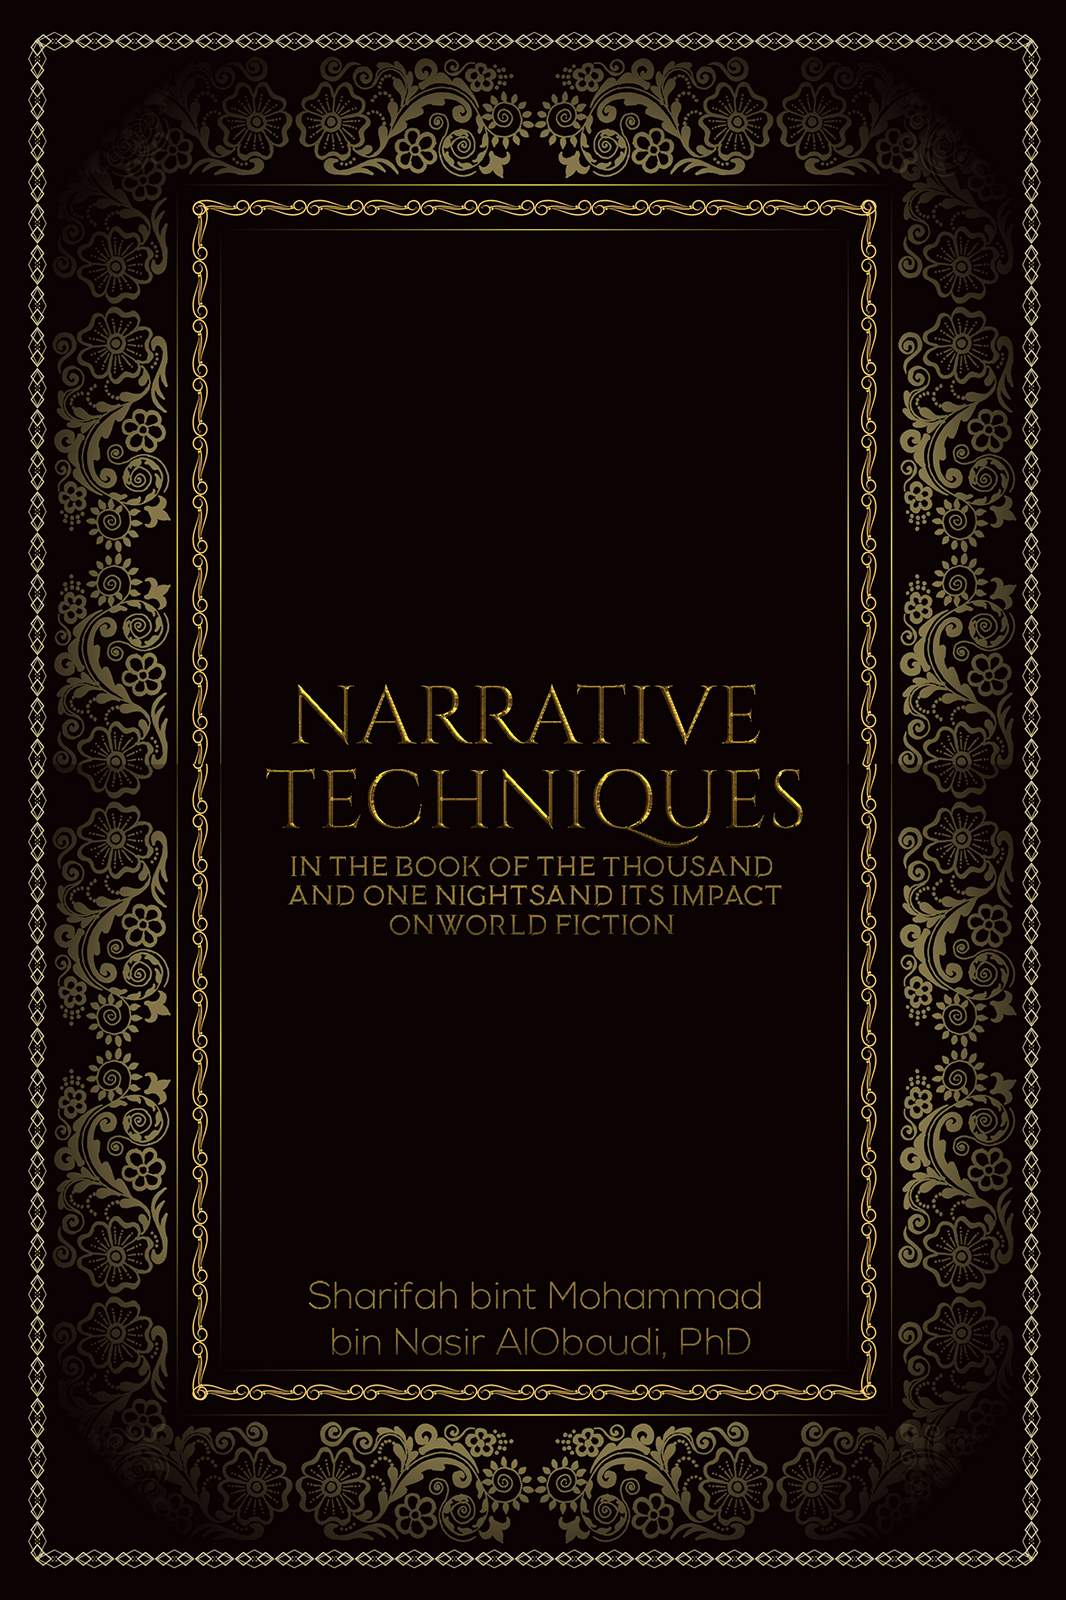 Narrative Techniques in the Book of the Thousand and One Nights and its Impact on World Fiction